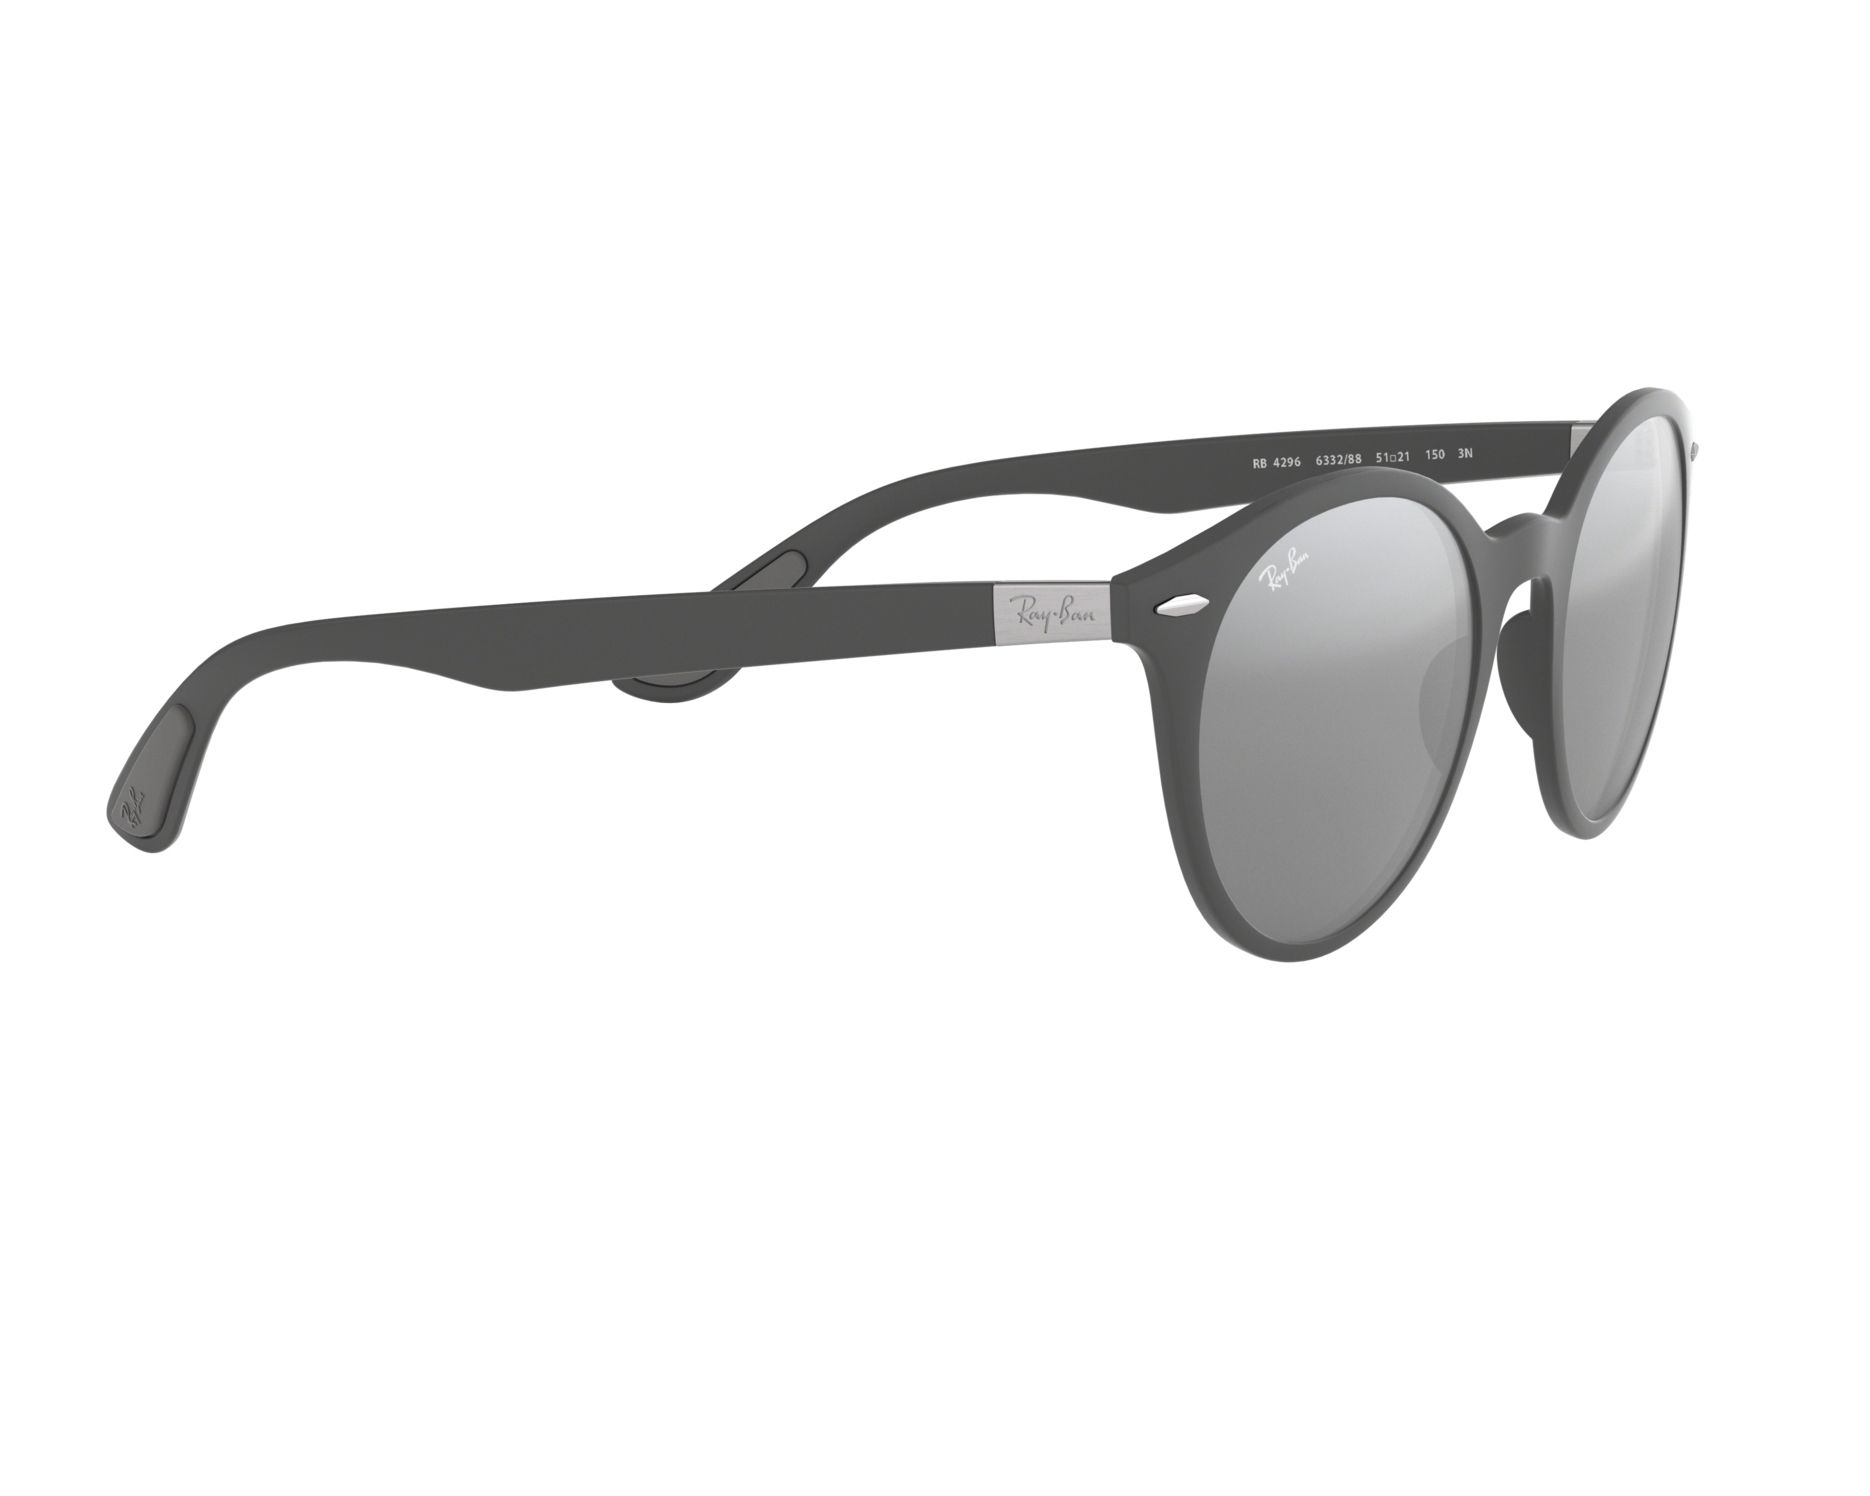 Sunglasses Ray-Ban RB-4296 633288 51-21 Grey 360 degree view 11 afb39de810